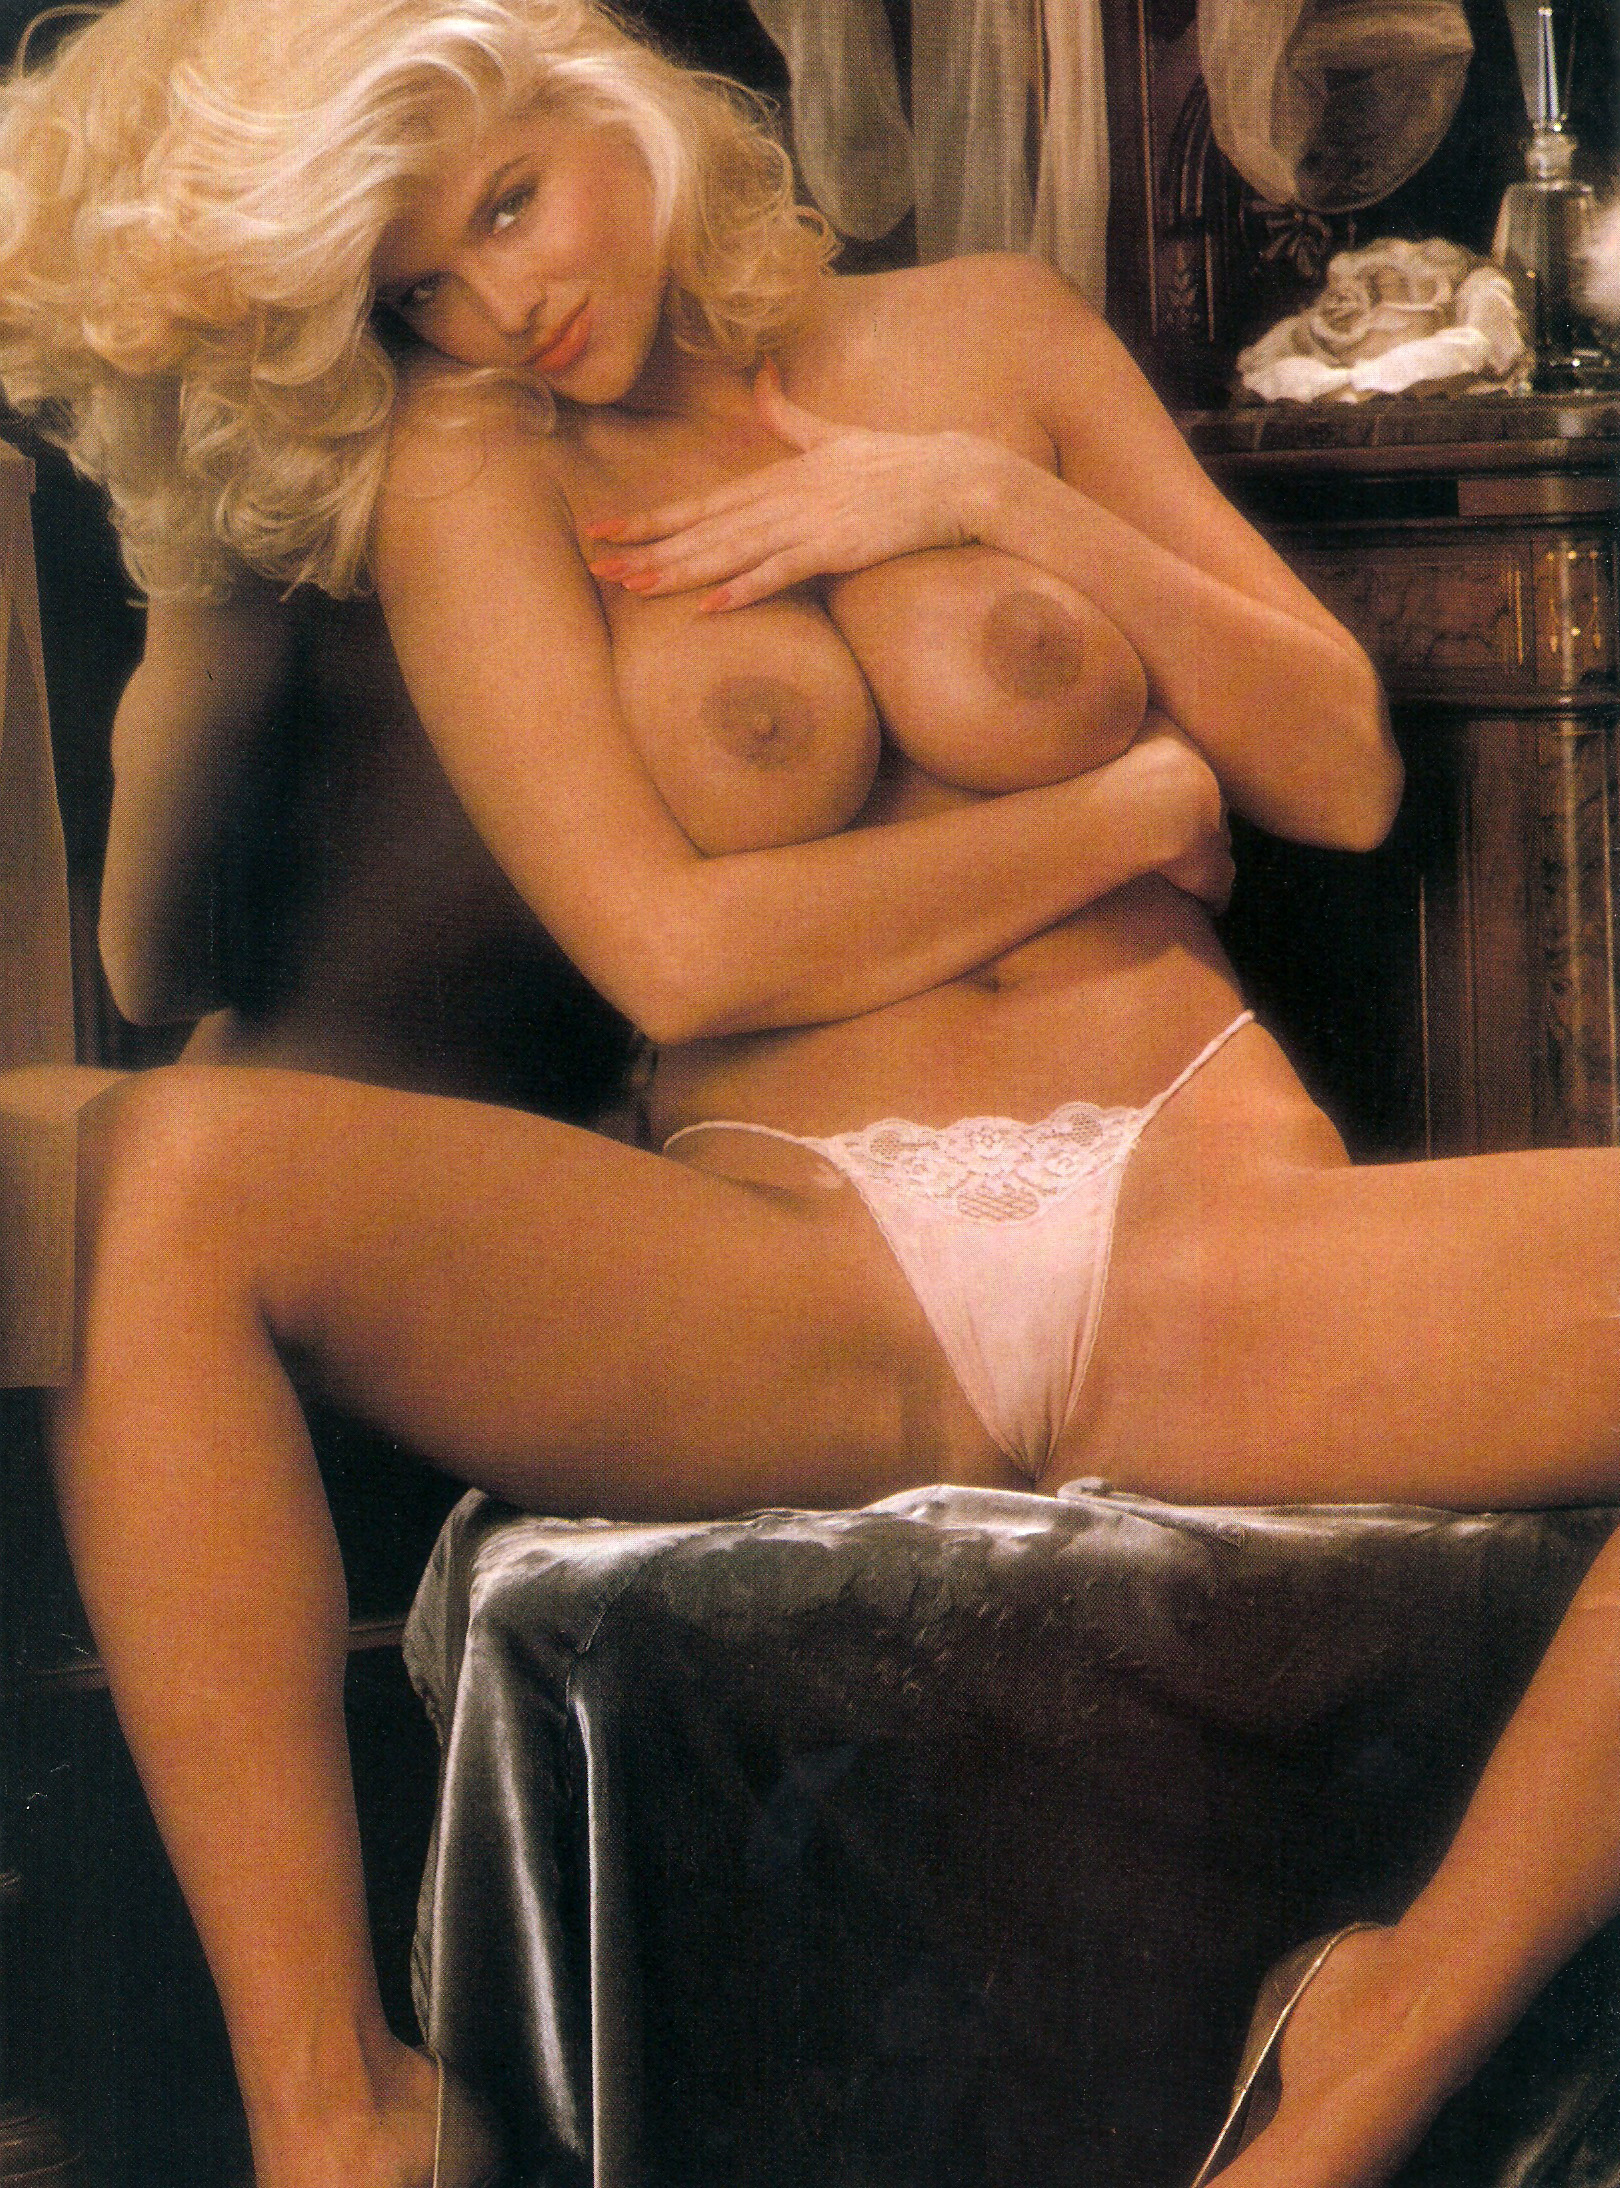 Anna Nicole Smith 22 Playboy 1992.jpg